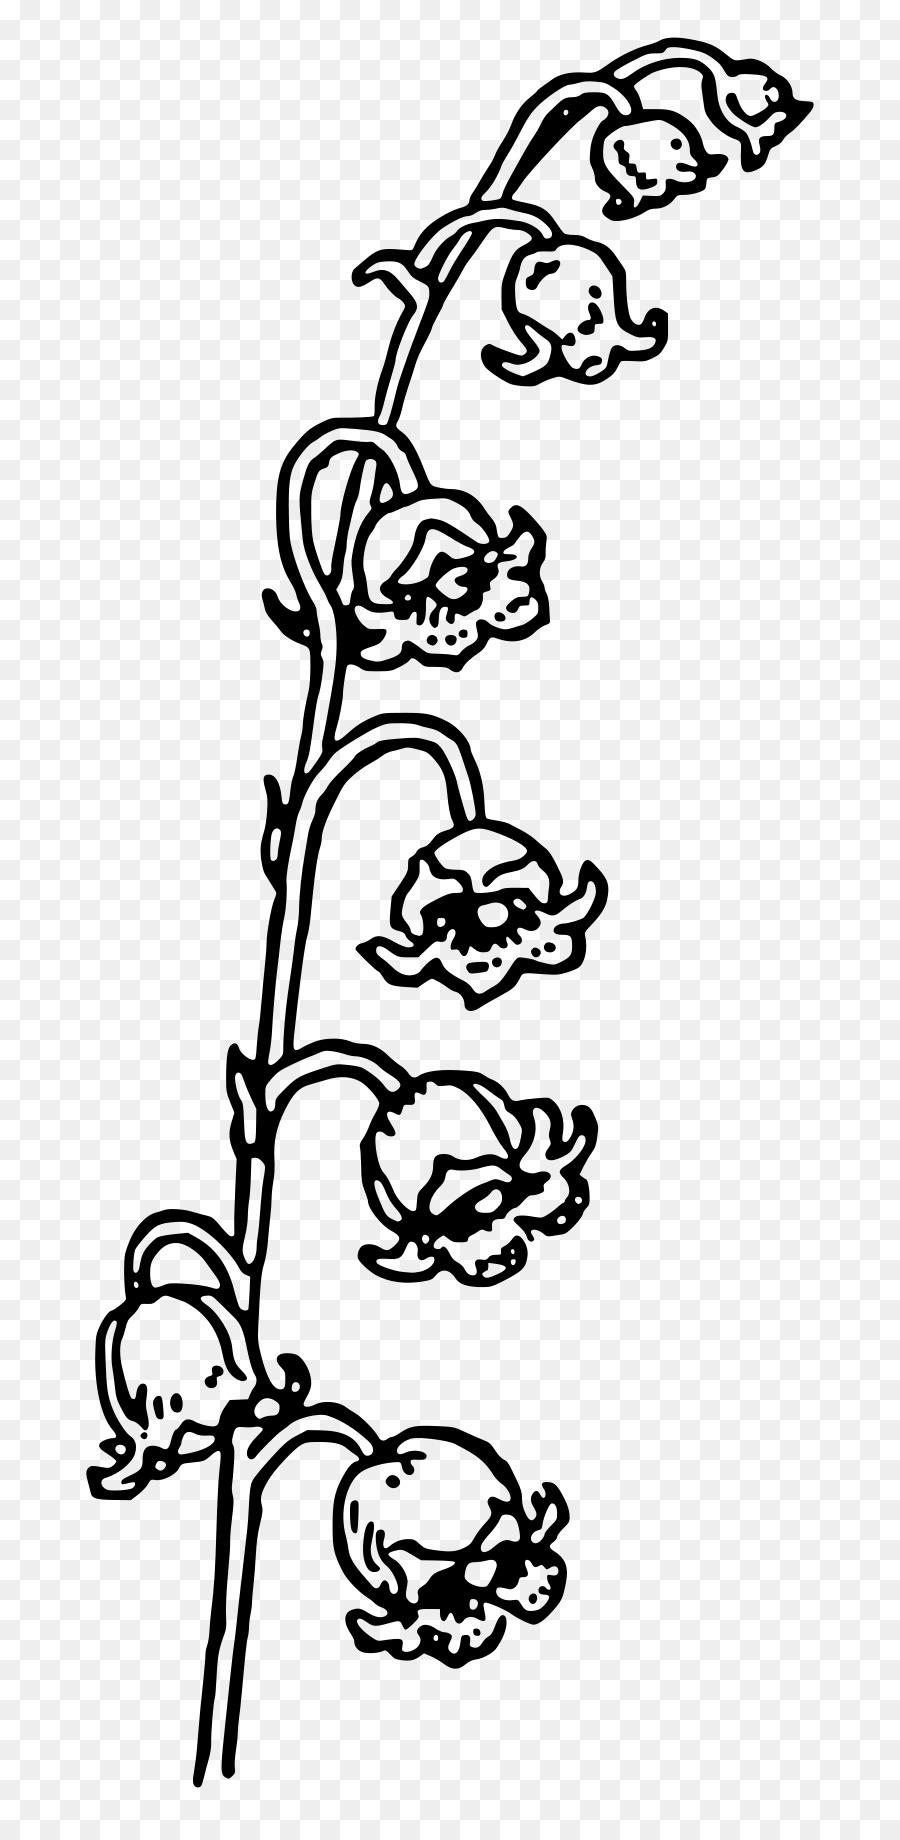 Valley of the king clipart black and white clipart freeuse download Black And White Flower png download - 800*1825 - Free ... clipart freeuse download